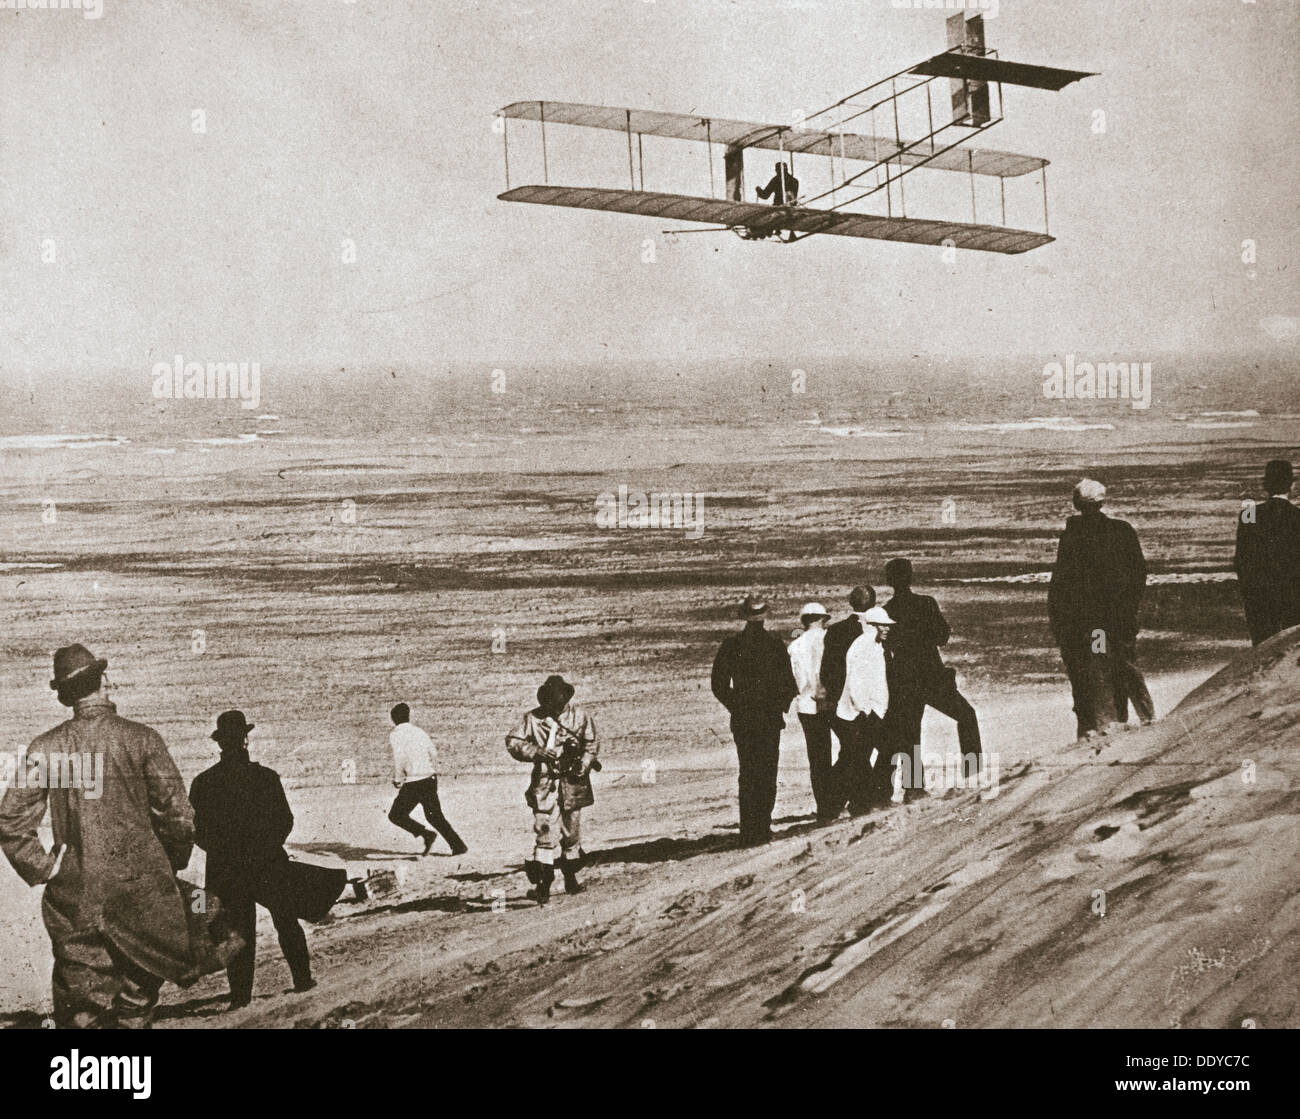 Image result for kitty hawk plane images